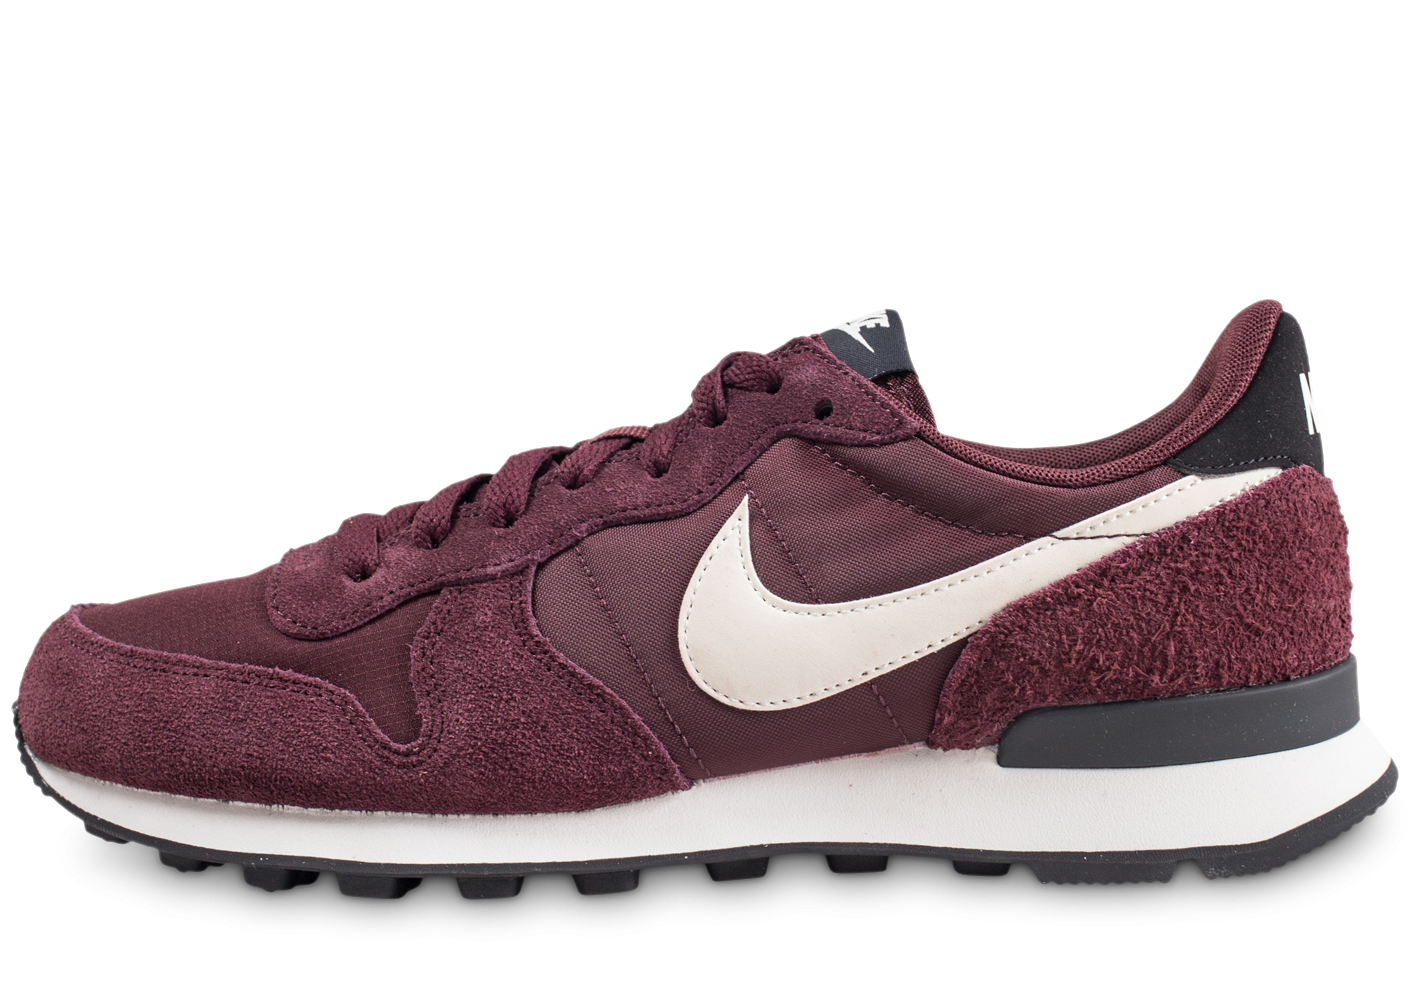 detailed look 4c26c 3412c Nike Internationalist bordeaux femme - Chaussures Baskets femme - Chausport